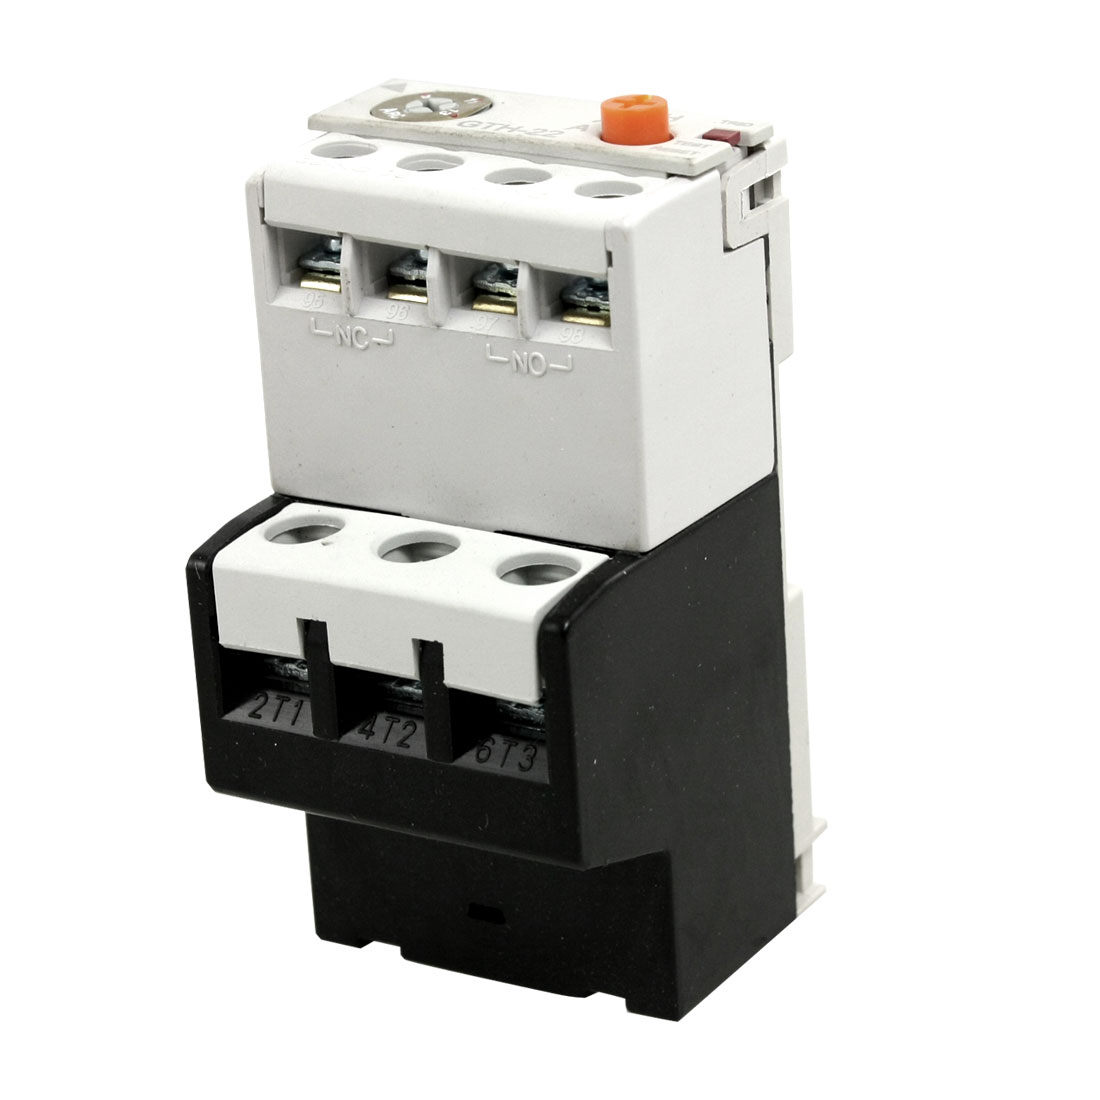 Overcurrent Protection Three Phase 9-13A Thermal Overload Relay